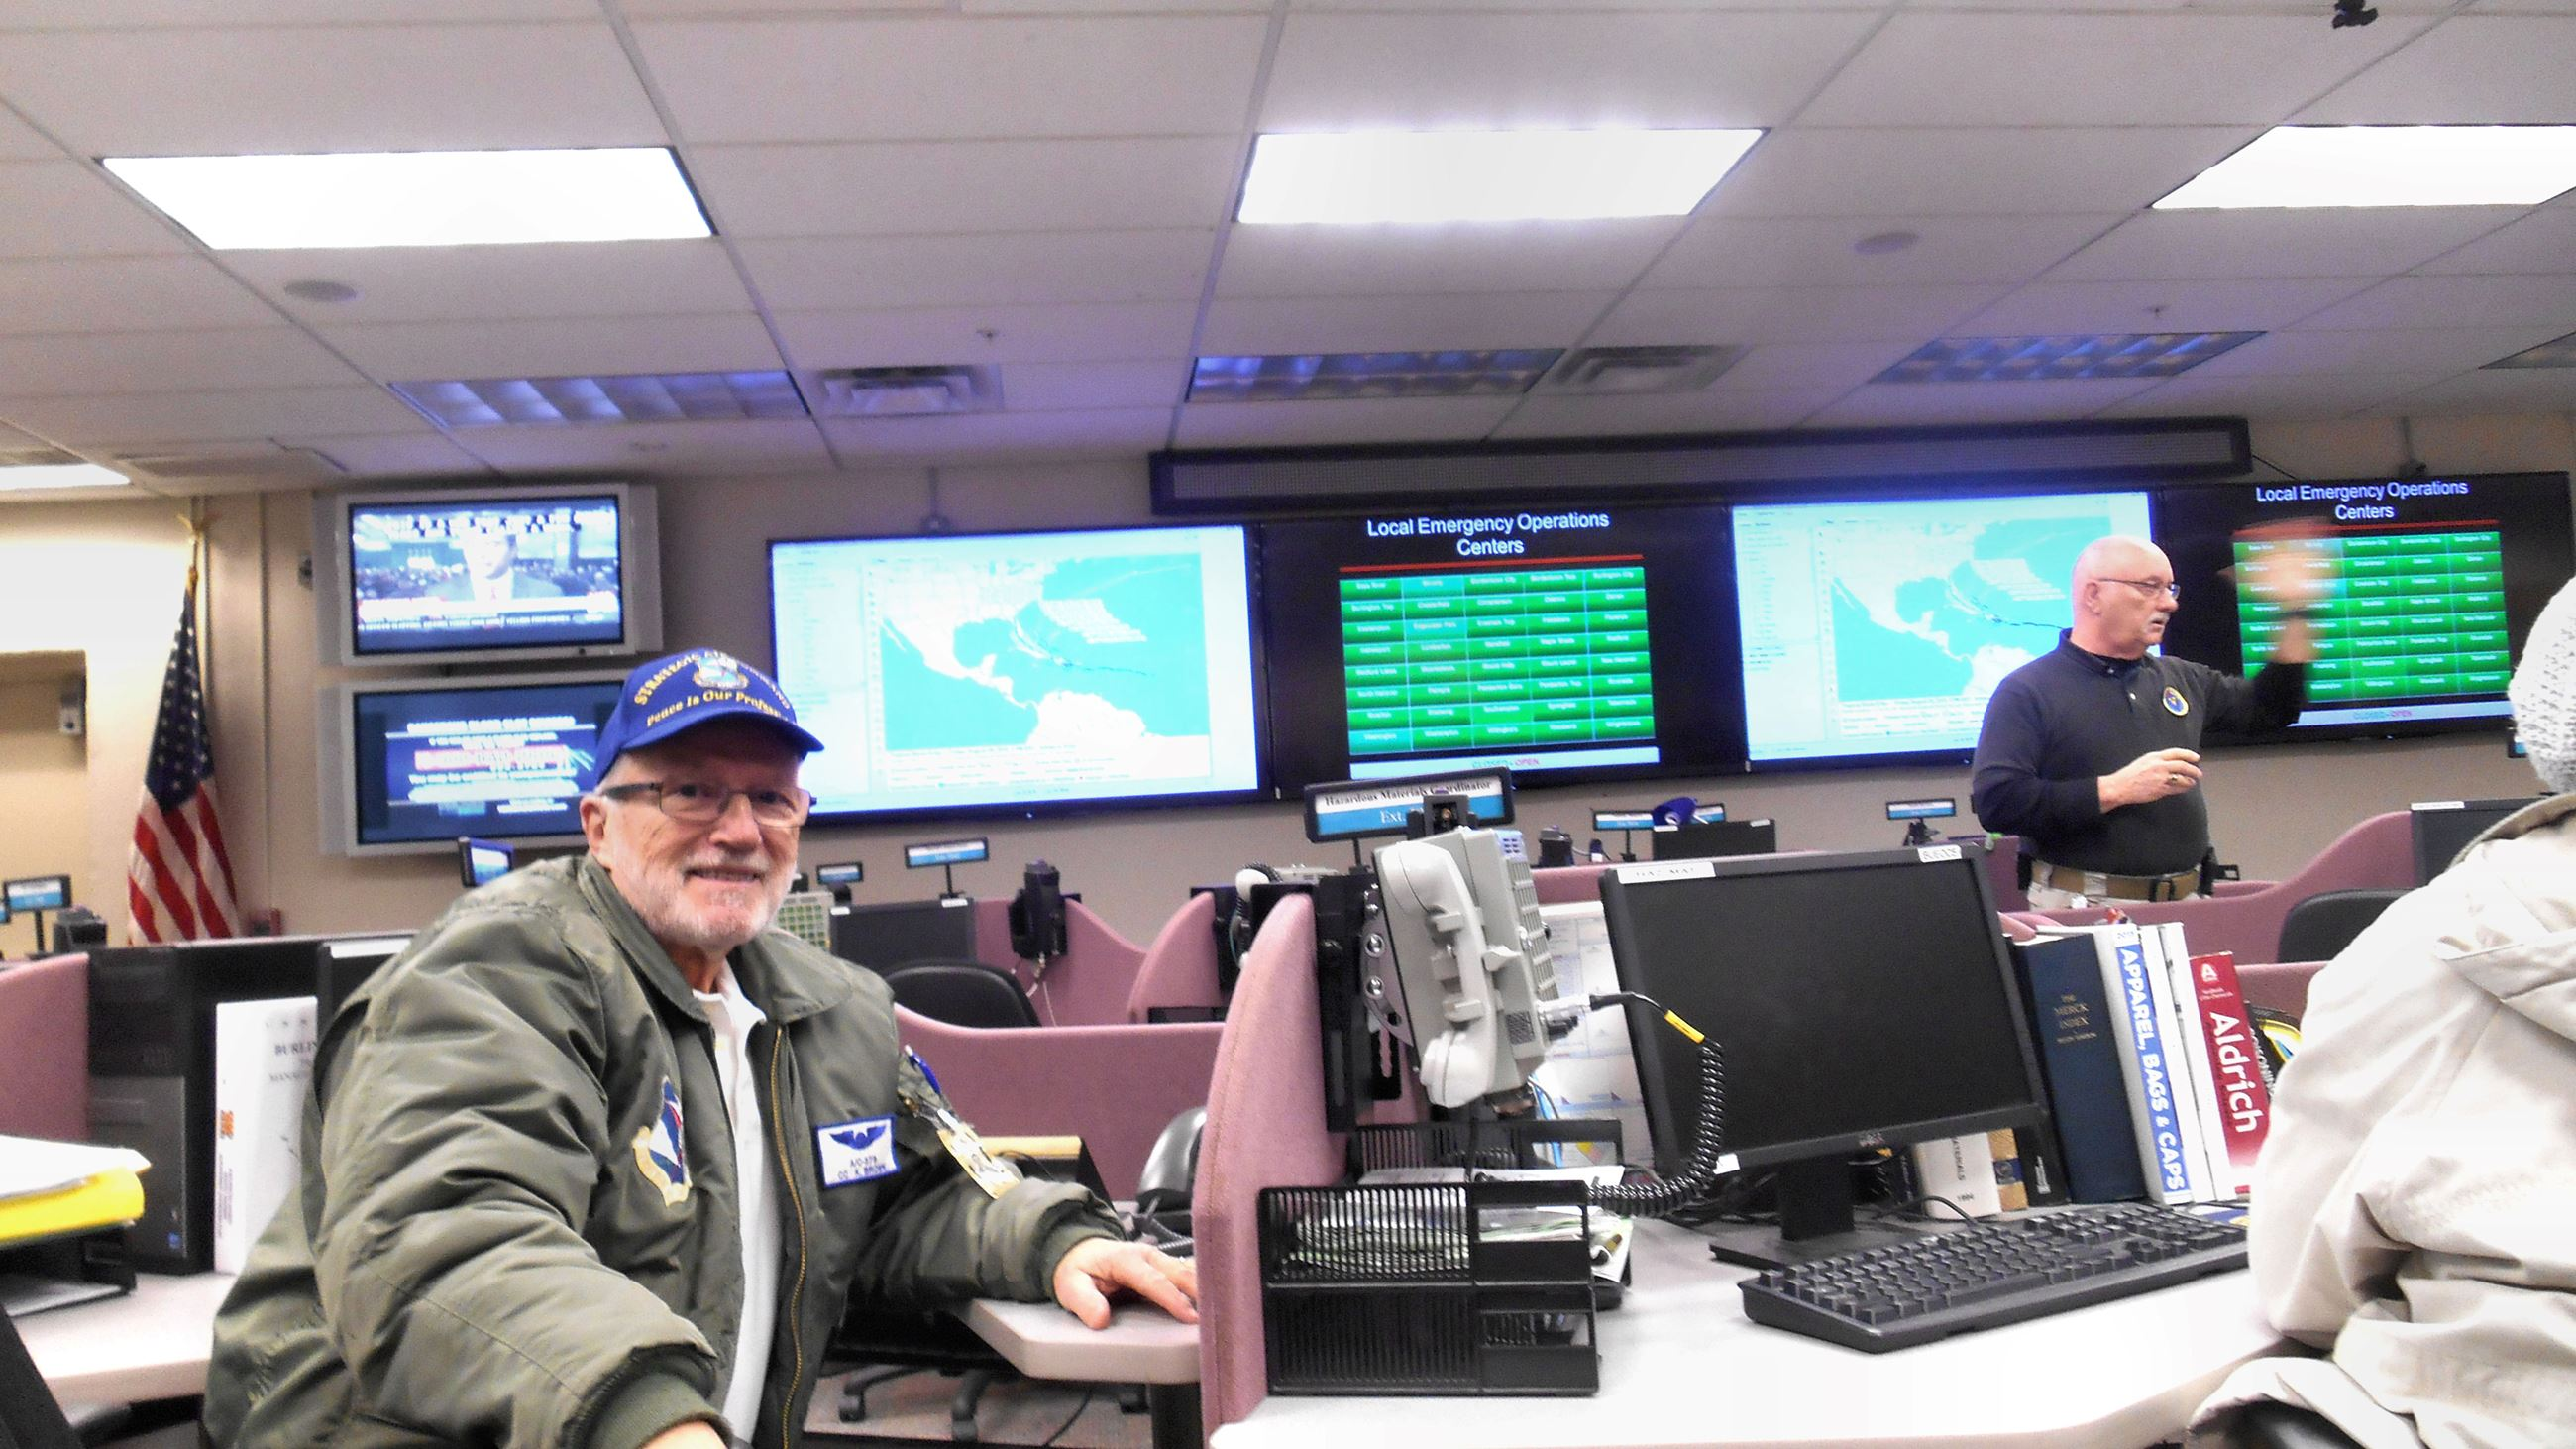 EMER RESPONSE CENTER. Mar 3, 2016-1